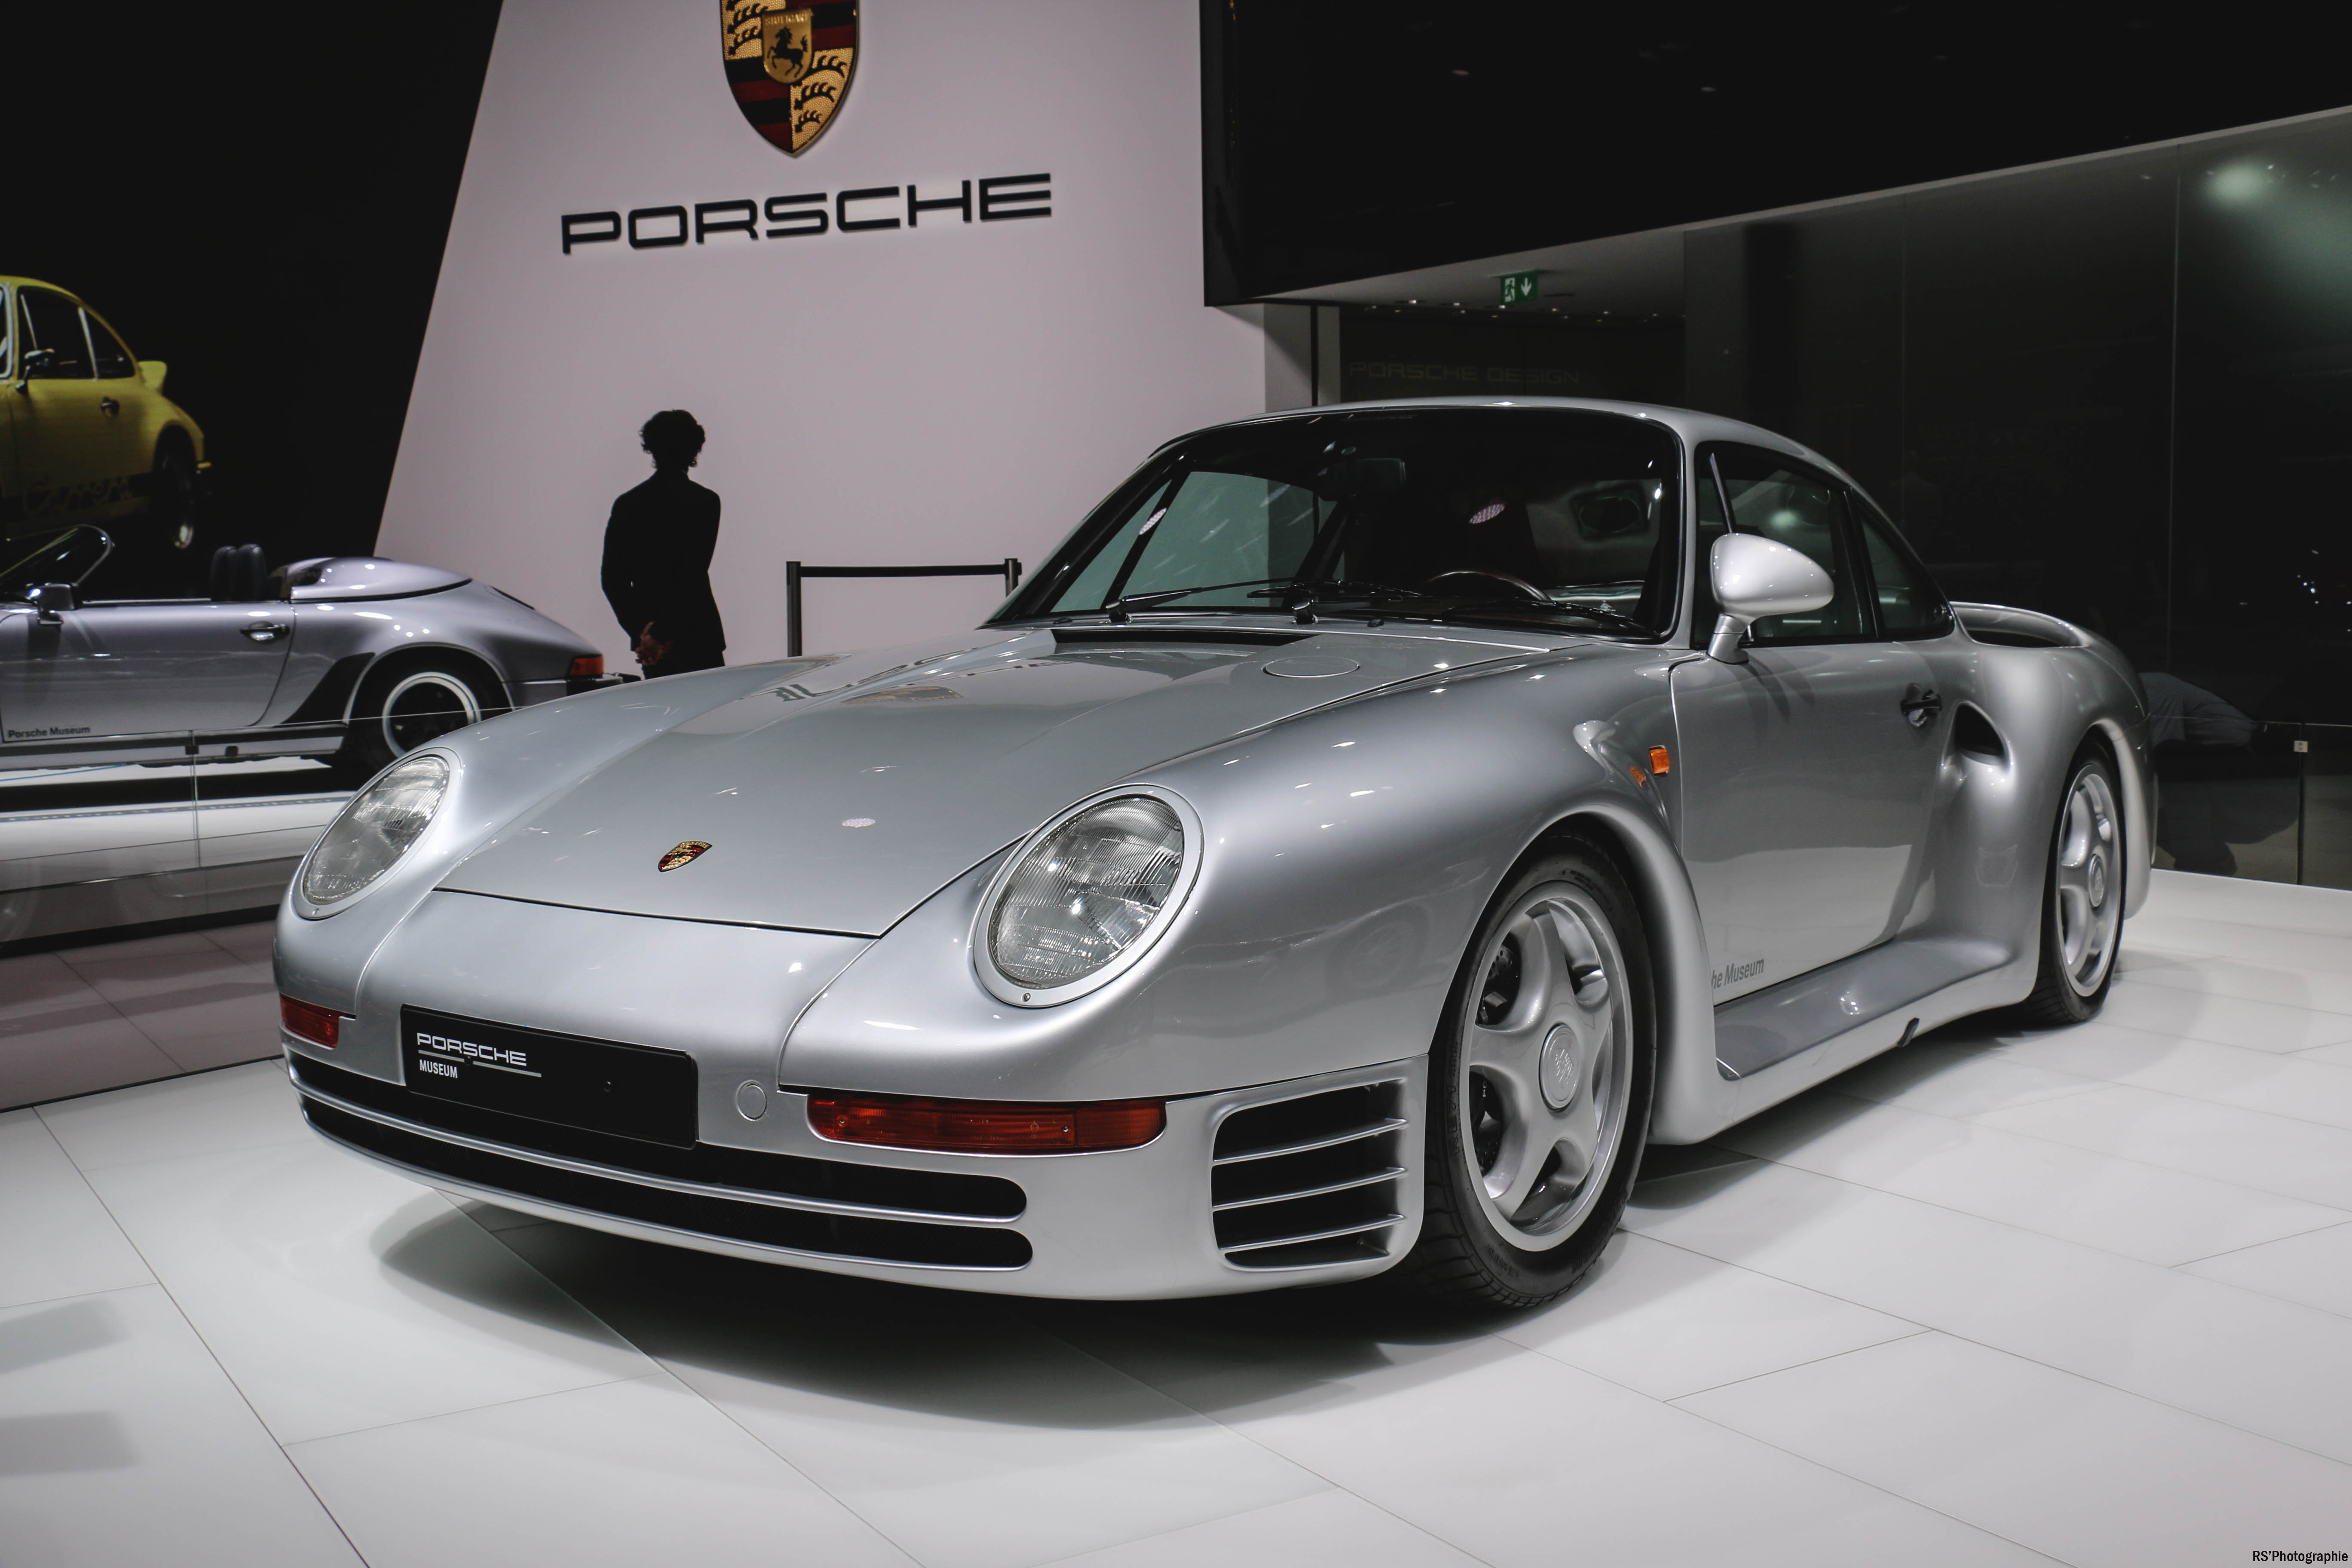 Porsche 959 - Paris Motor Show - 2018 - Mondial Auto - photo by Arnaud Demasier RS Photographie